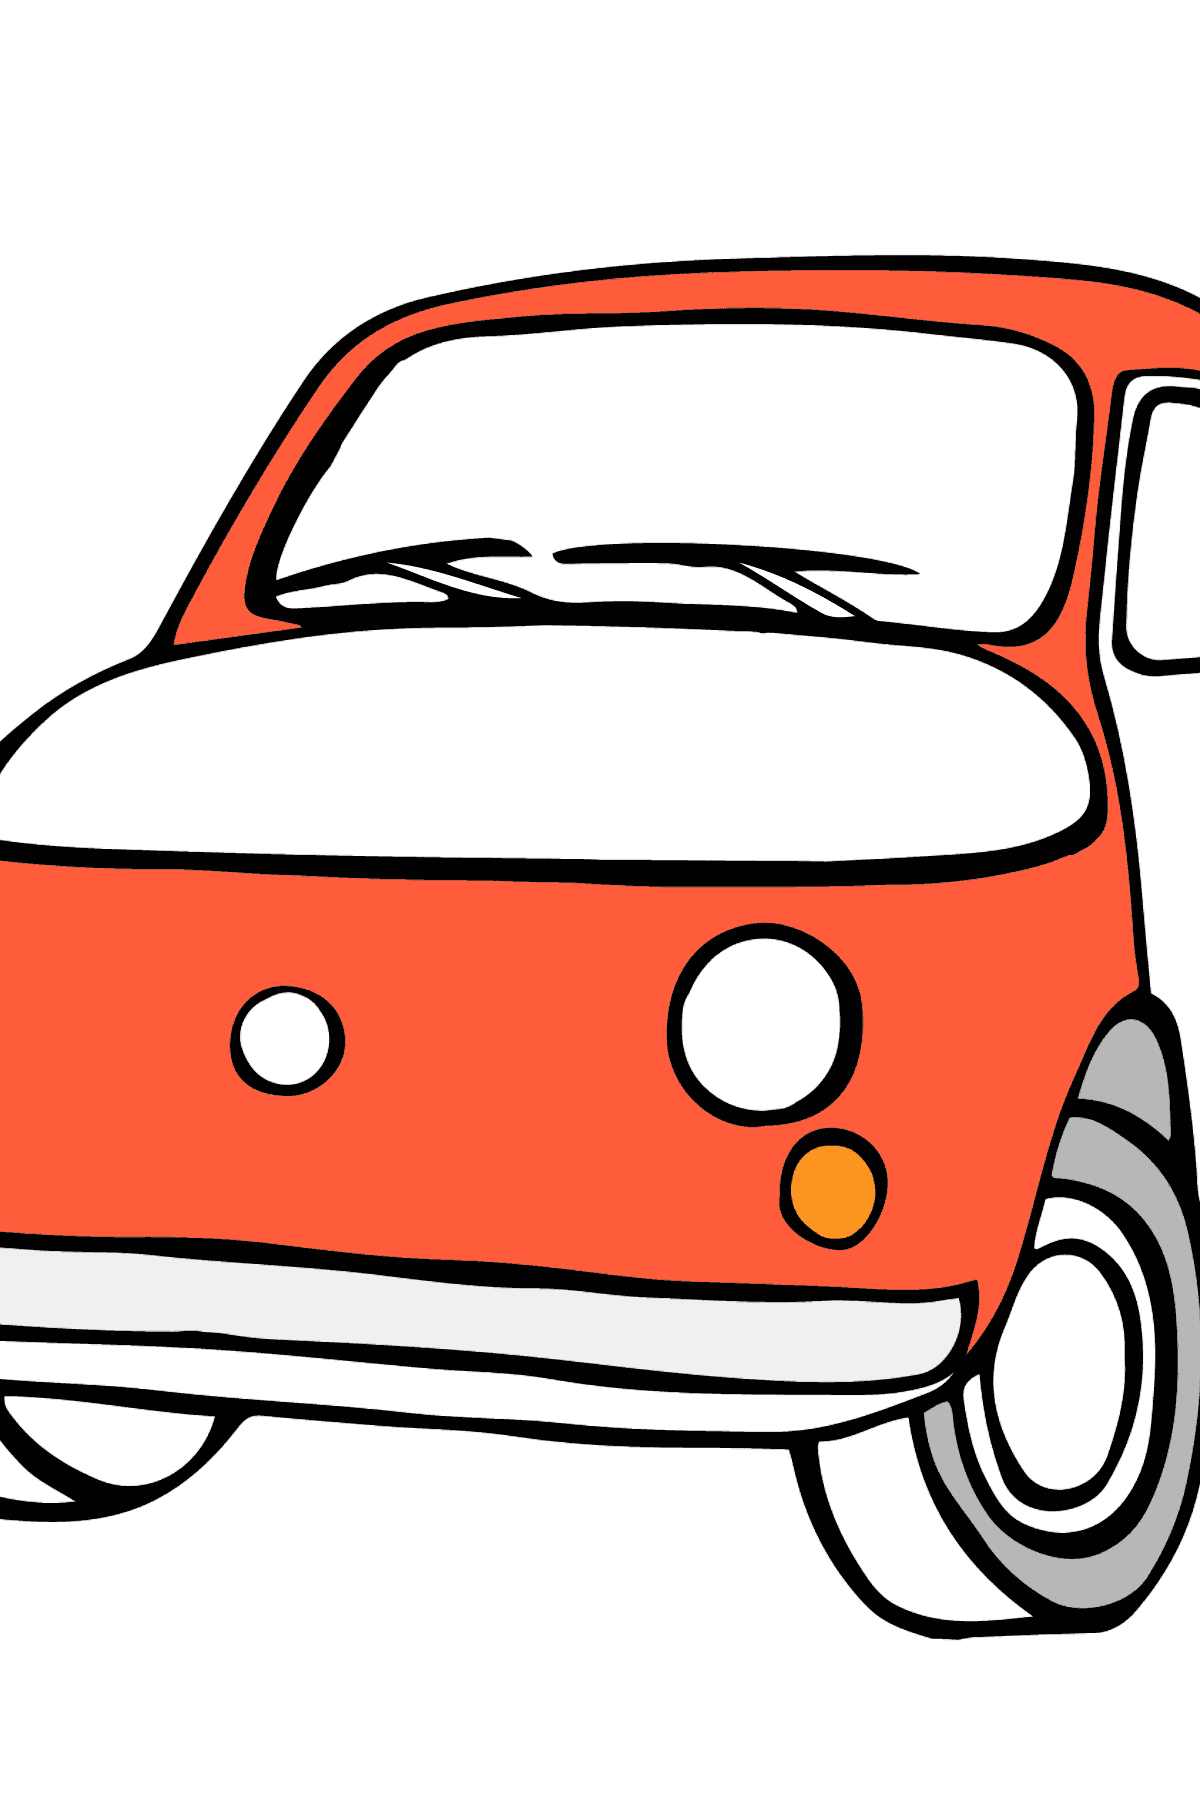 Fiat 500 (red car) coloring page - Coloring Pages for Kids